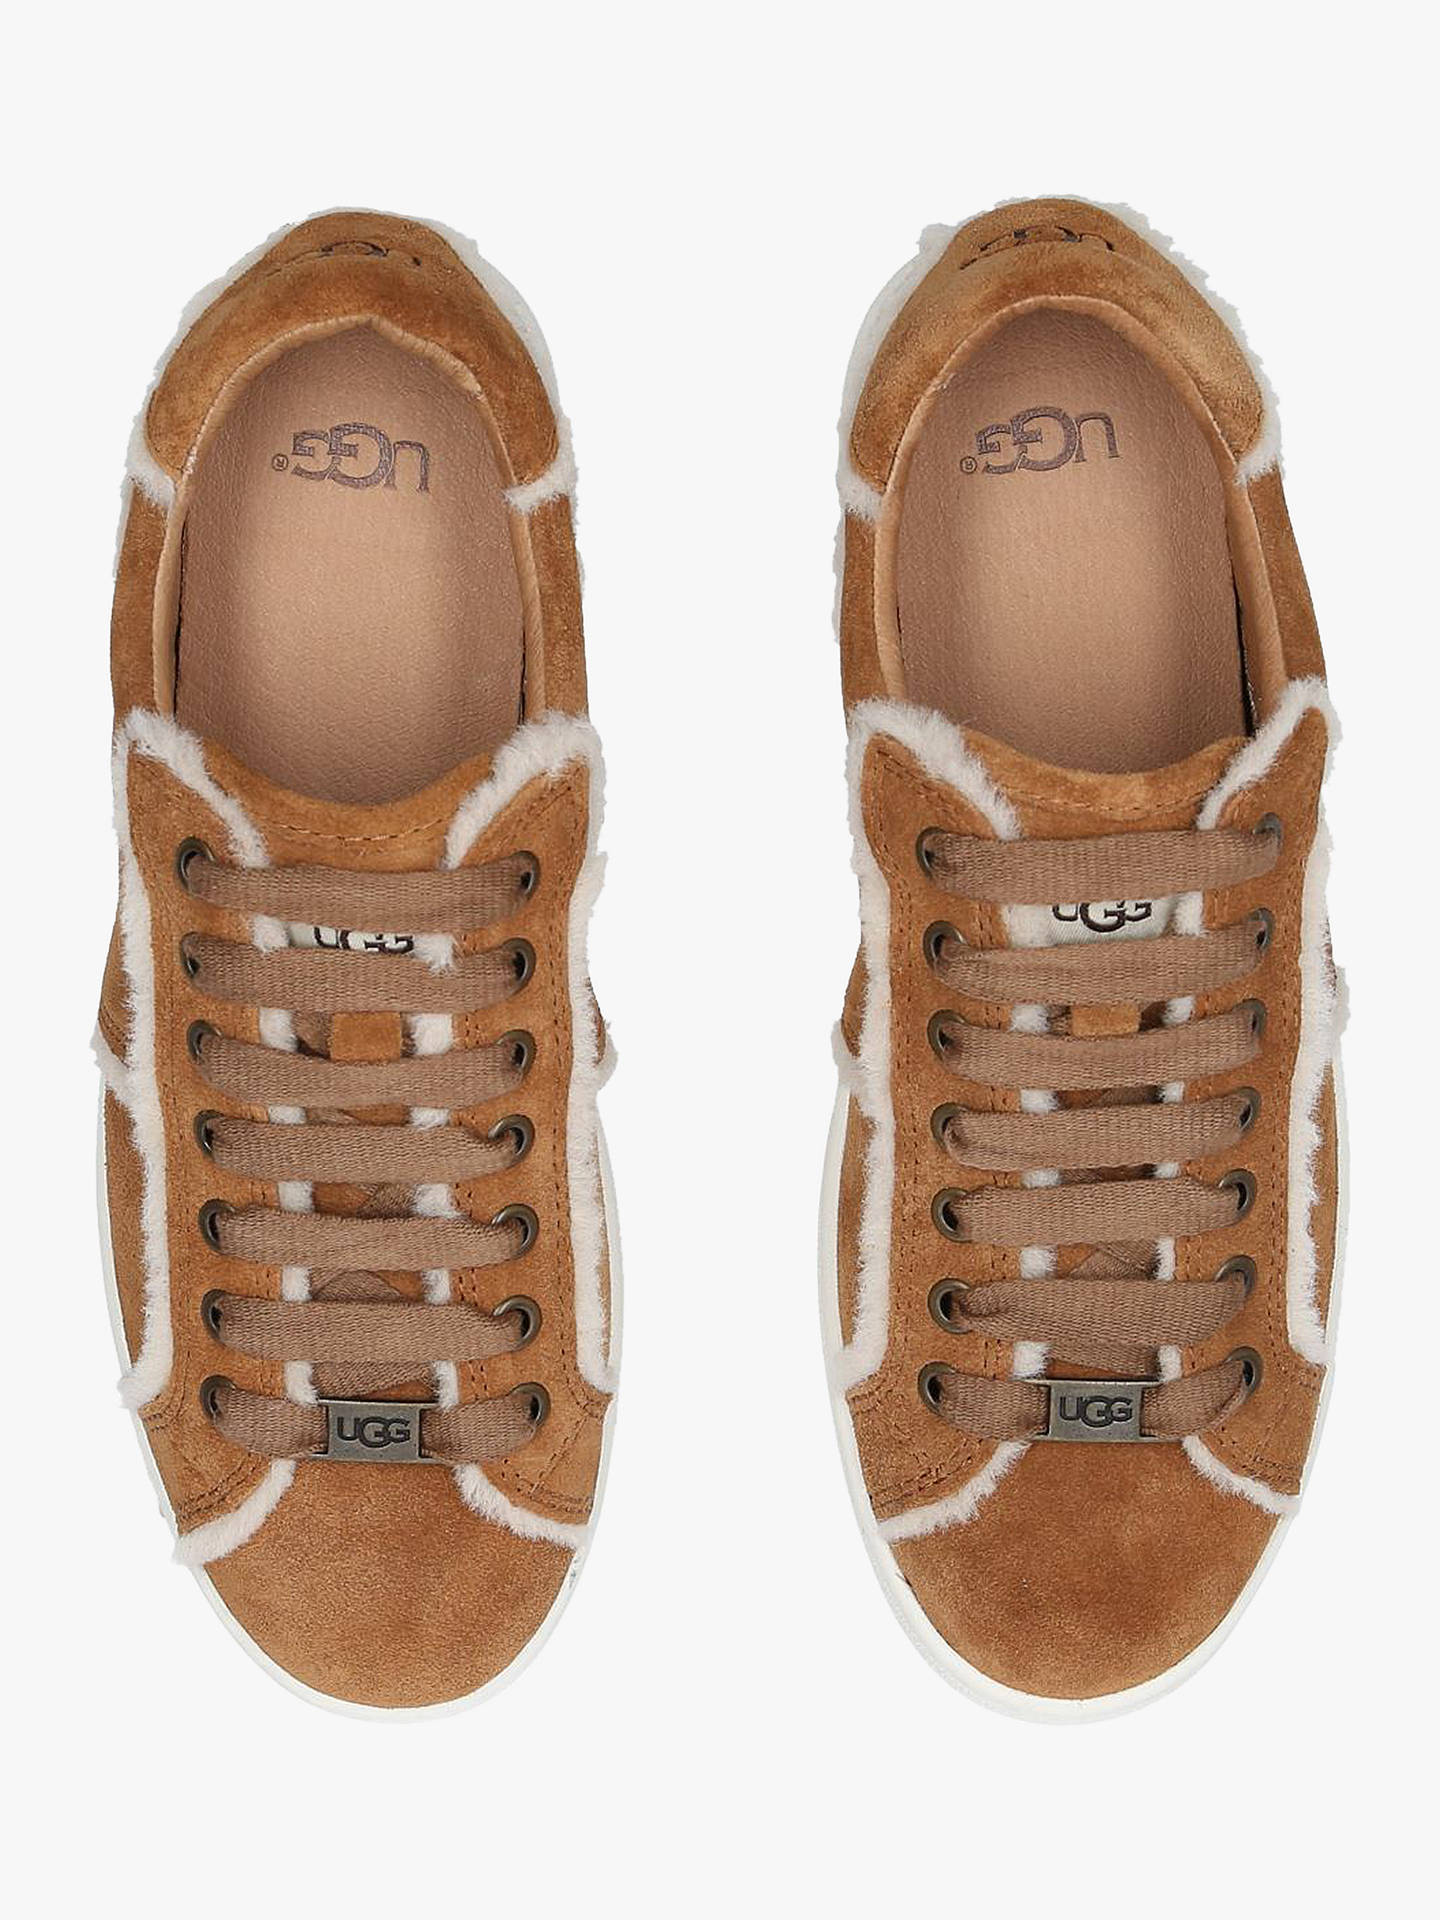 9f73098d173 UGG Milo Spill Seam Sneakers, Brown Dark at John Lewis & Partners